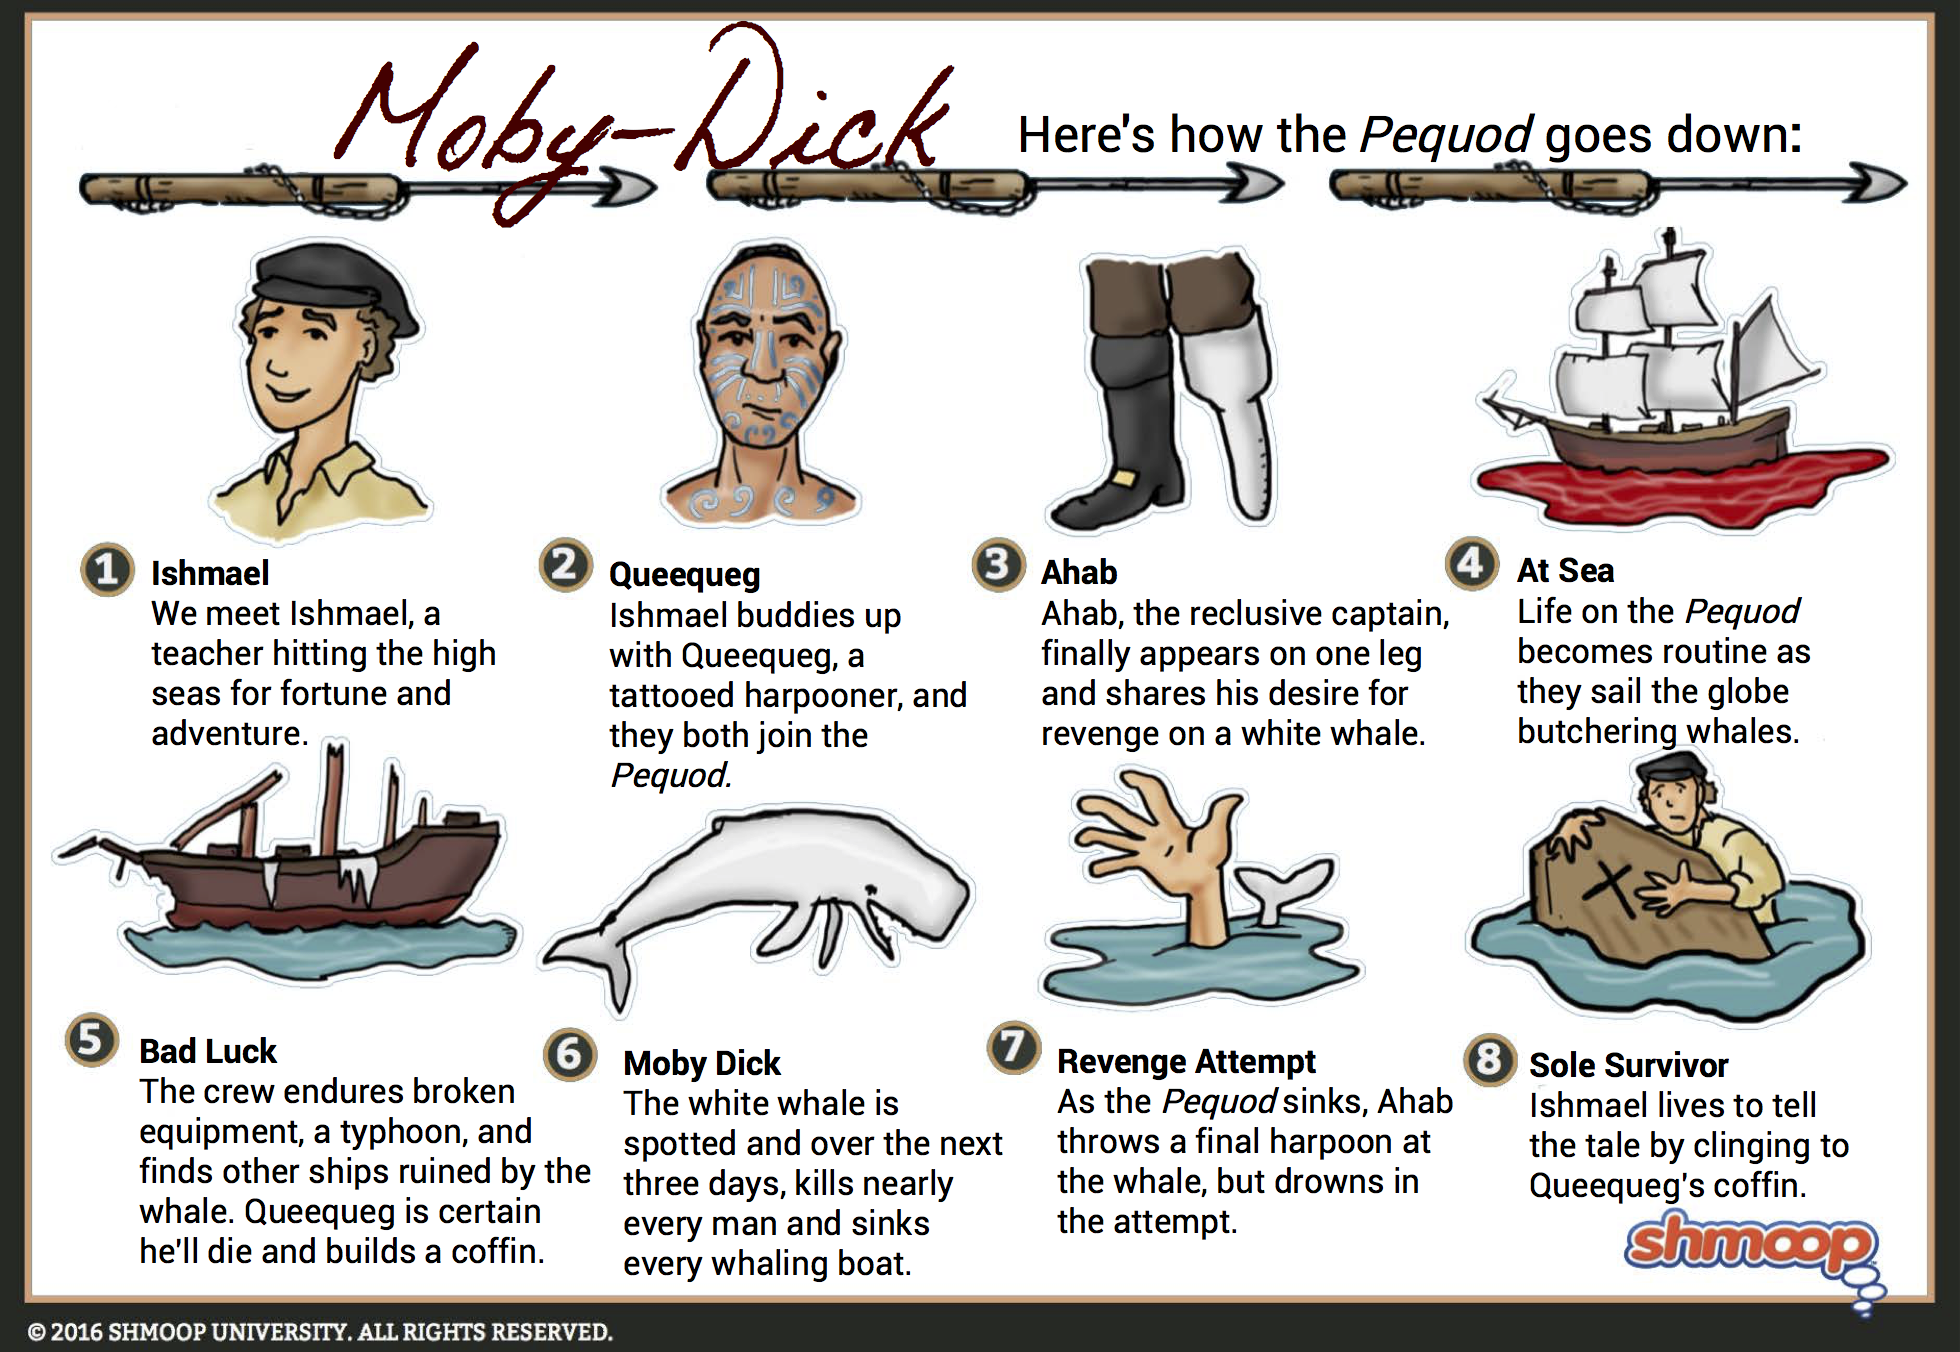 Moby Dick Summary Short Story Plot Diagram Click The Infographic To Download